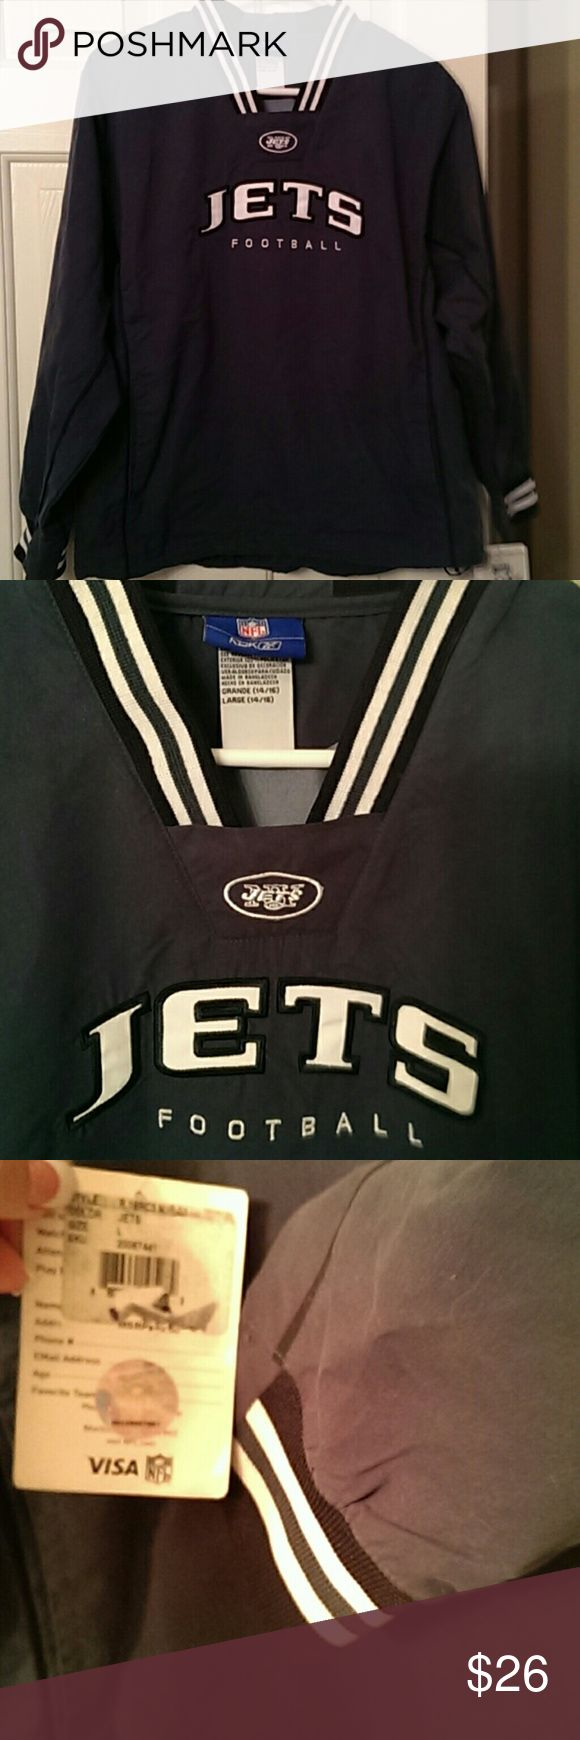 NWT Reebok NFL youth NY New York Jets pullover New with tags boys NY Jets pullover. Official NFL size large (14-16) by Reebok. Would fit and be loose on a ladies size M and a men's size S. Draw string pull around the bottom and two front pockets. 100% polyester. Makes a great wind breaker and shows your NY pride. Go green! Reebok Shirts & Tops Sweatshirts & Hoodies